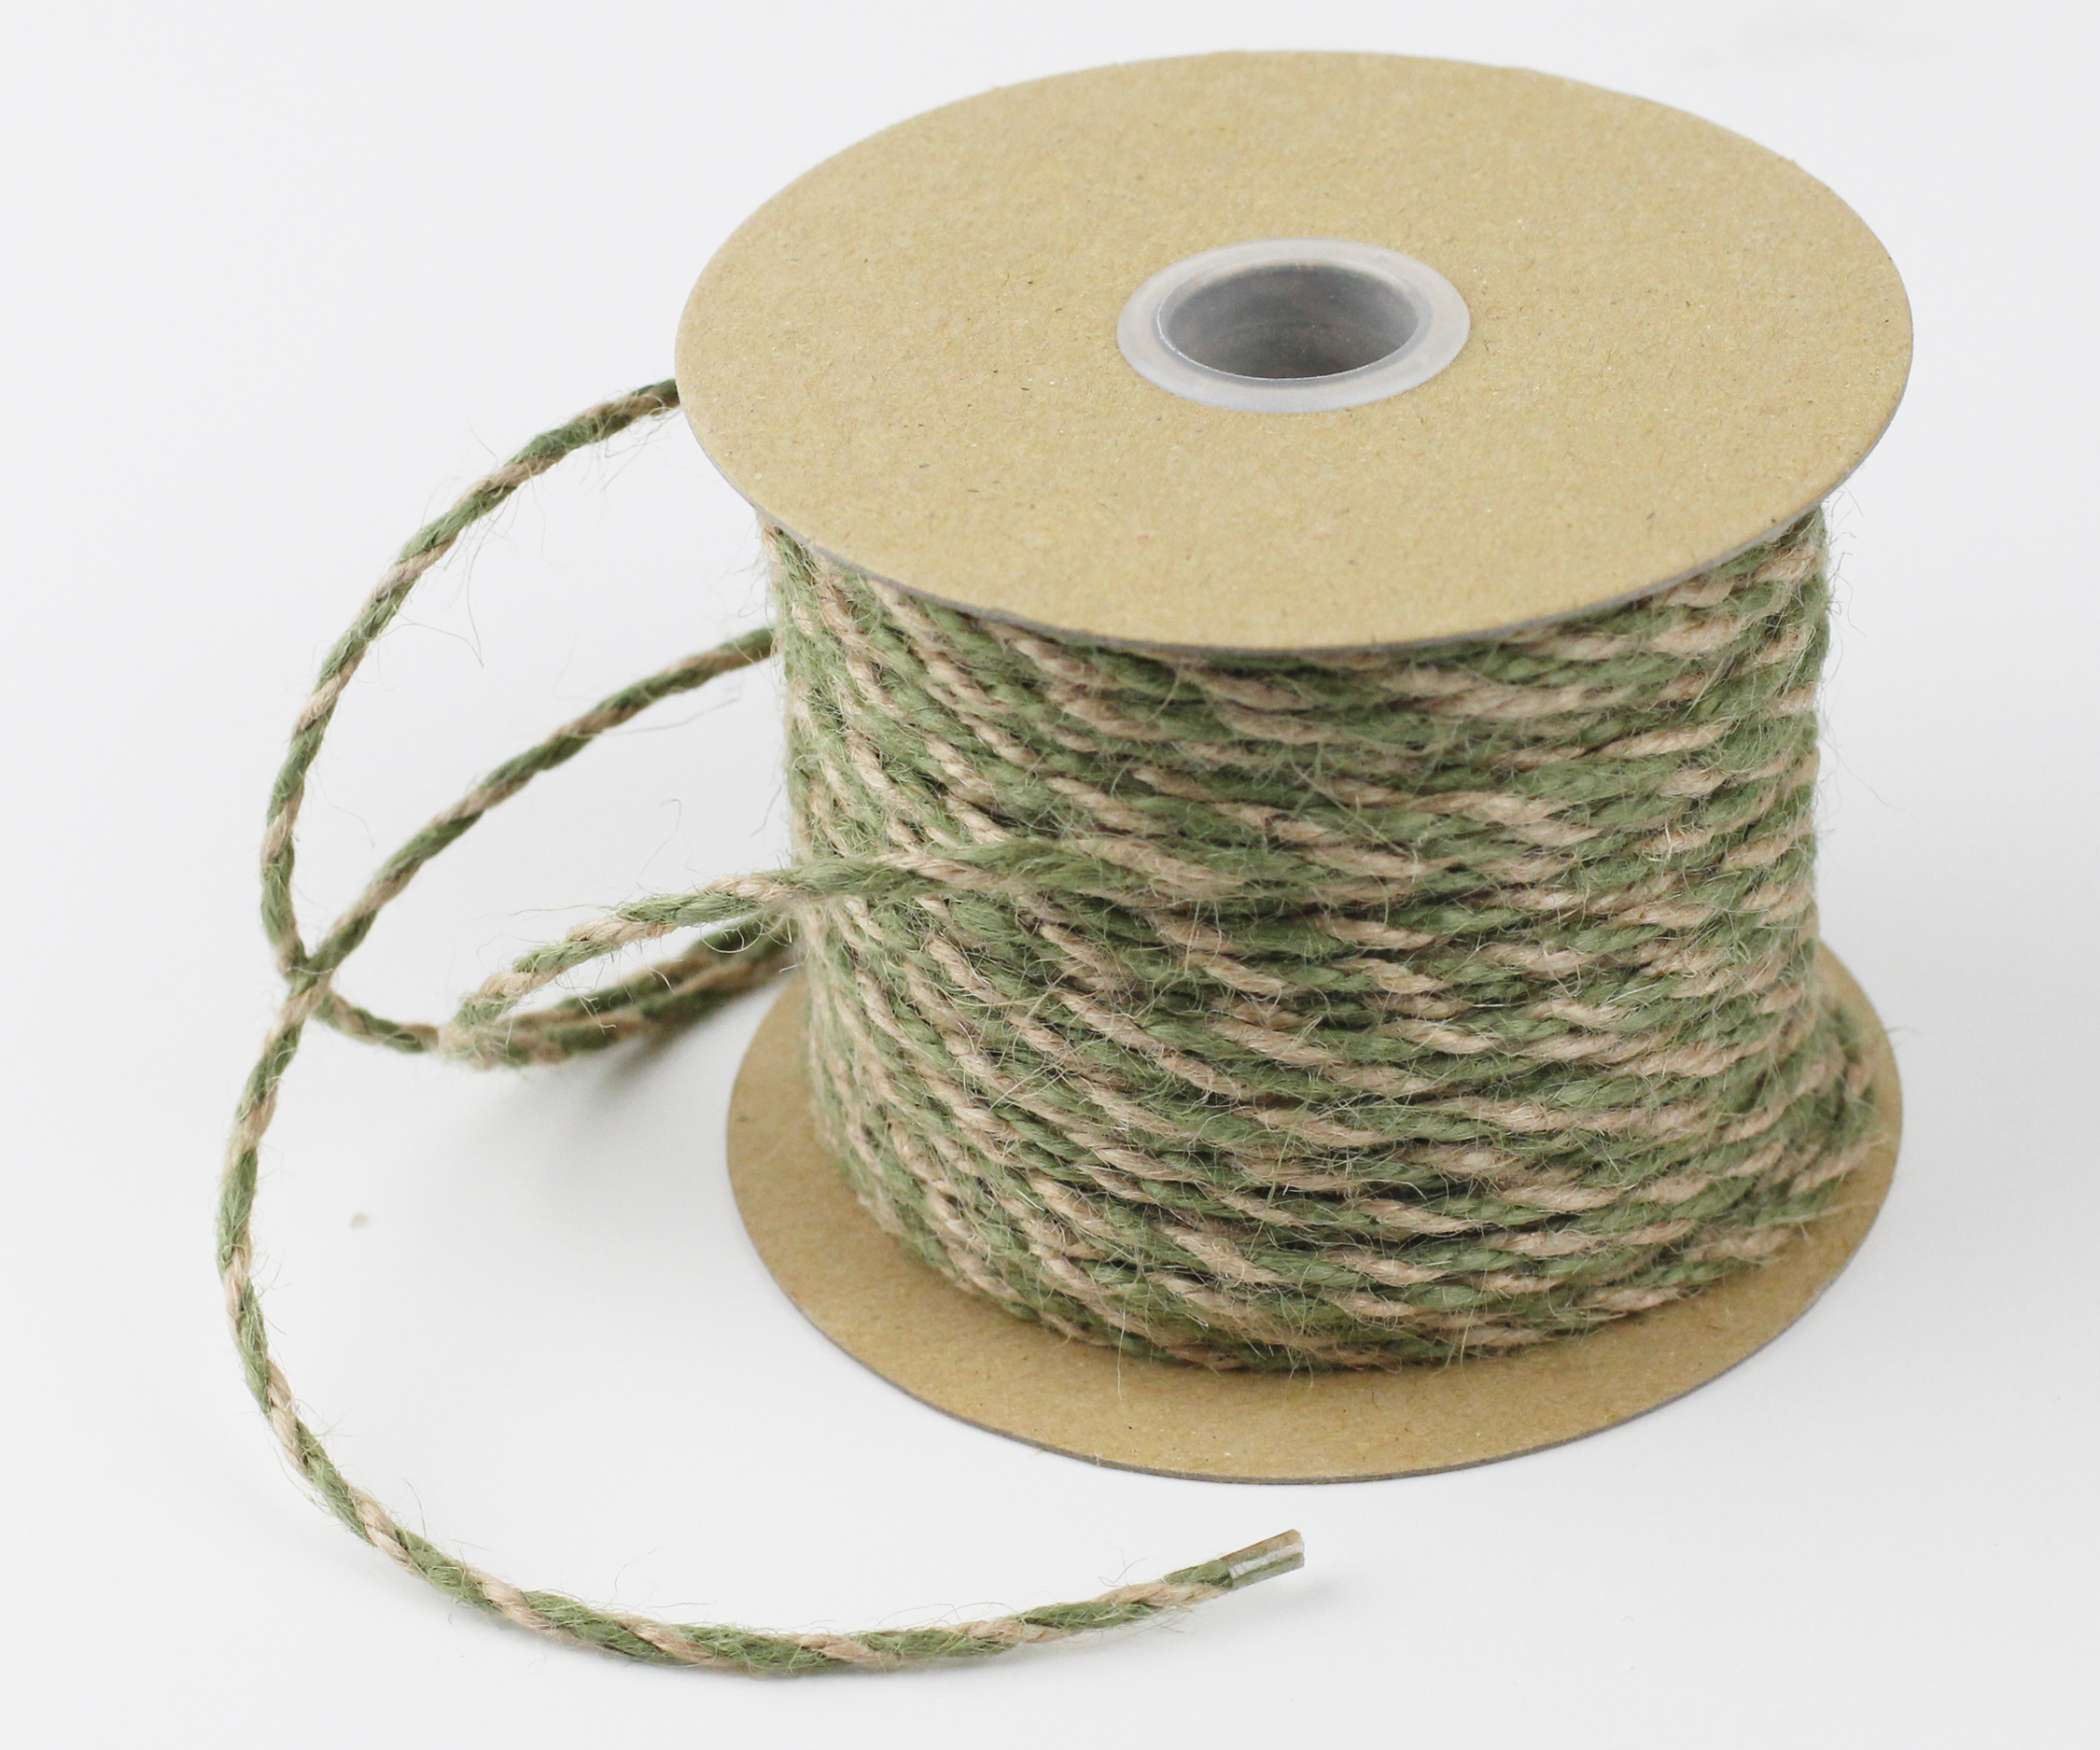 Moss/Natural Jute Twine - 2.5mm x 50 Yards